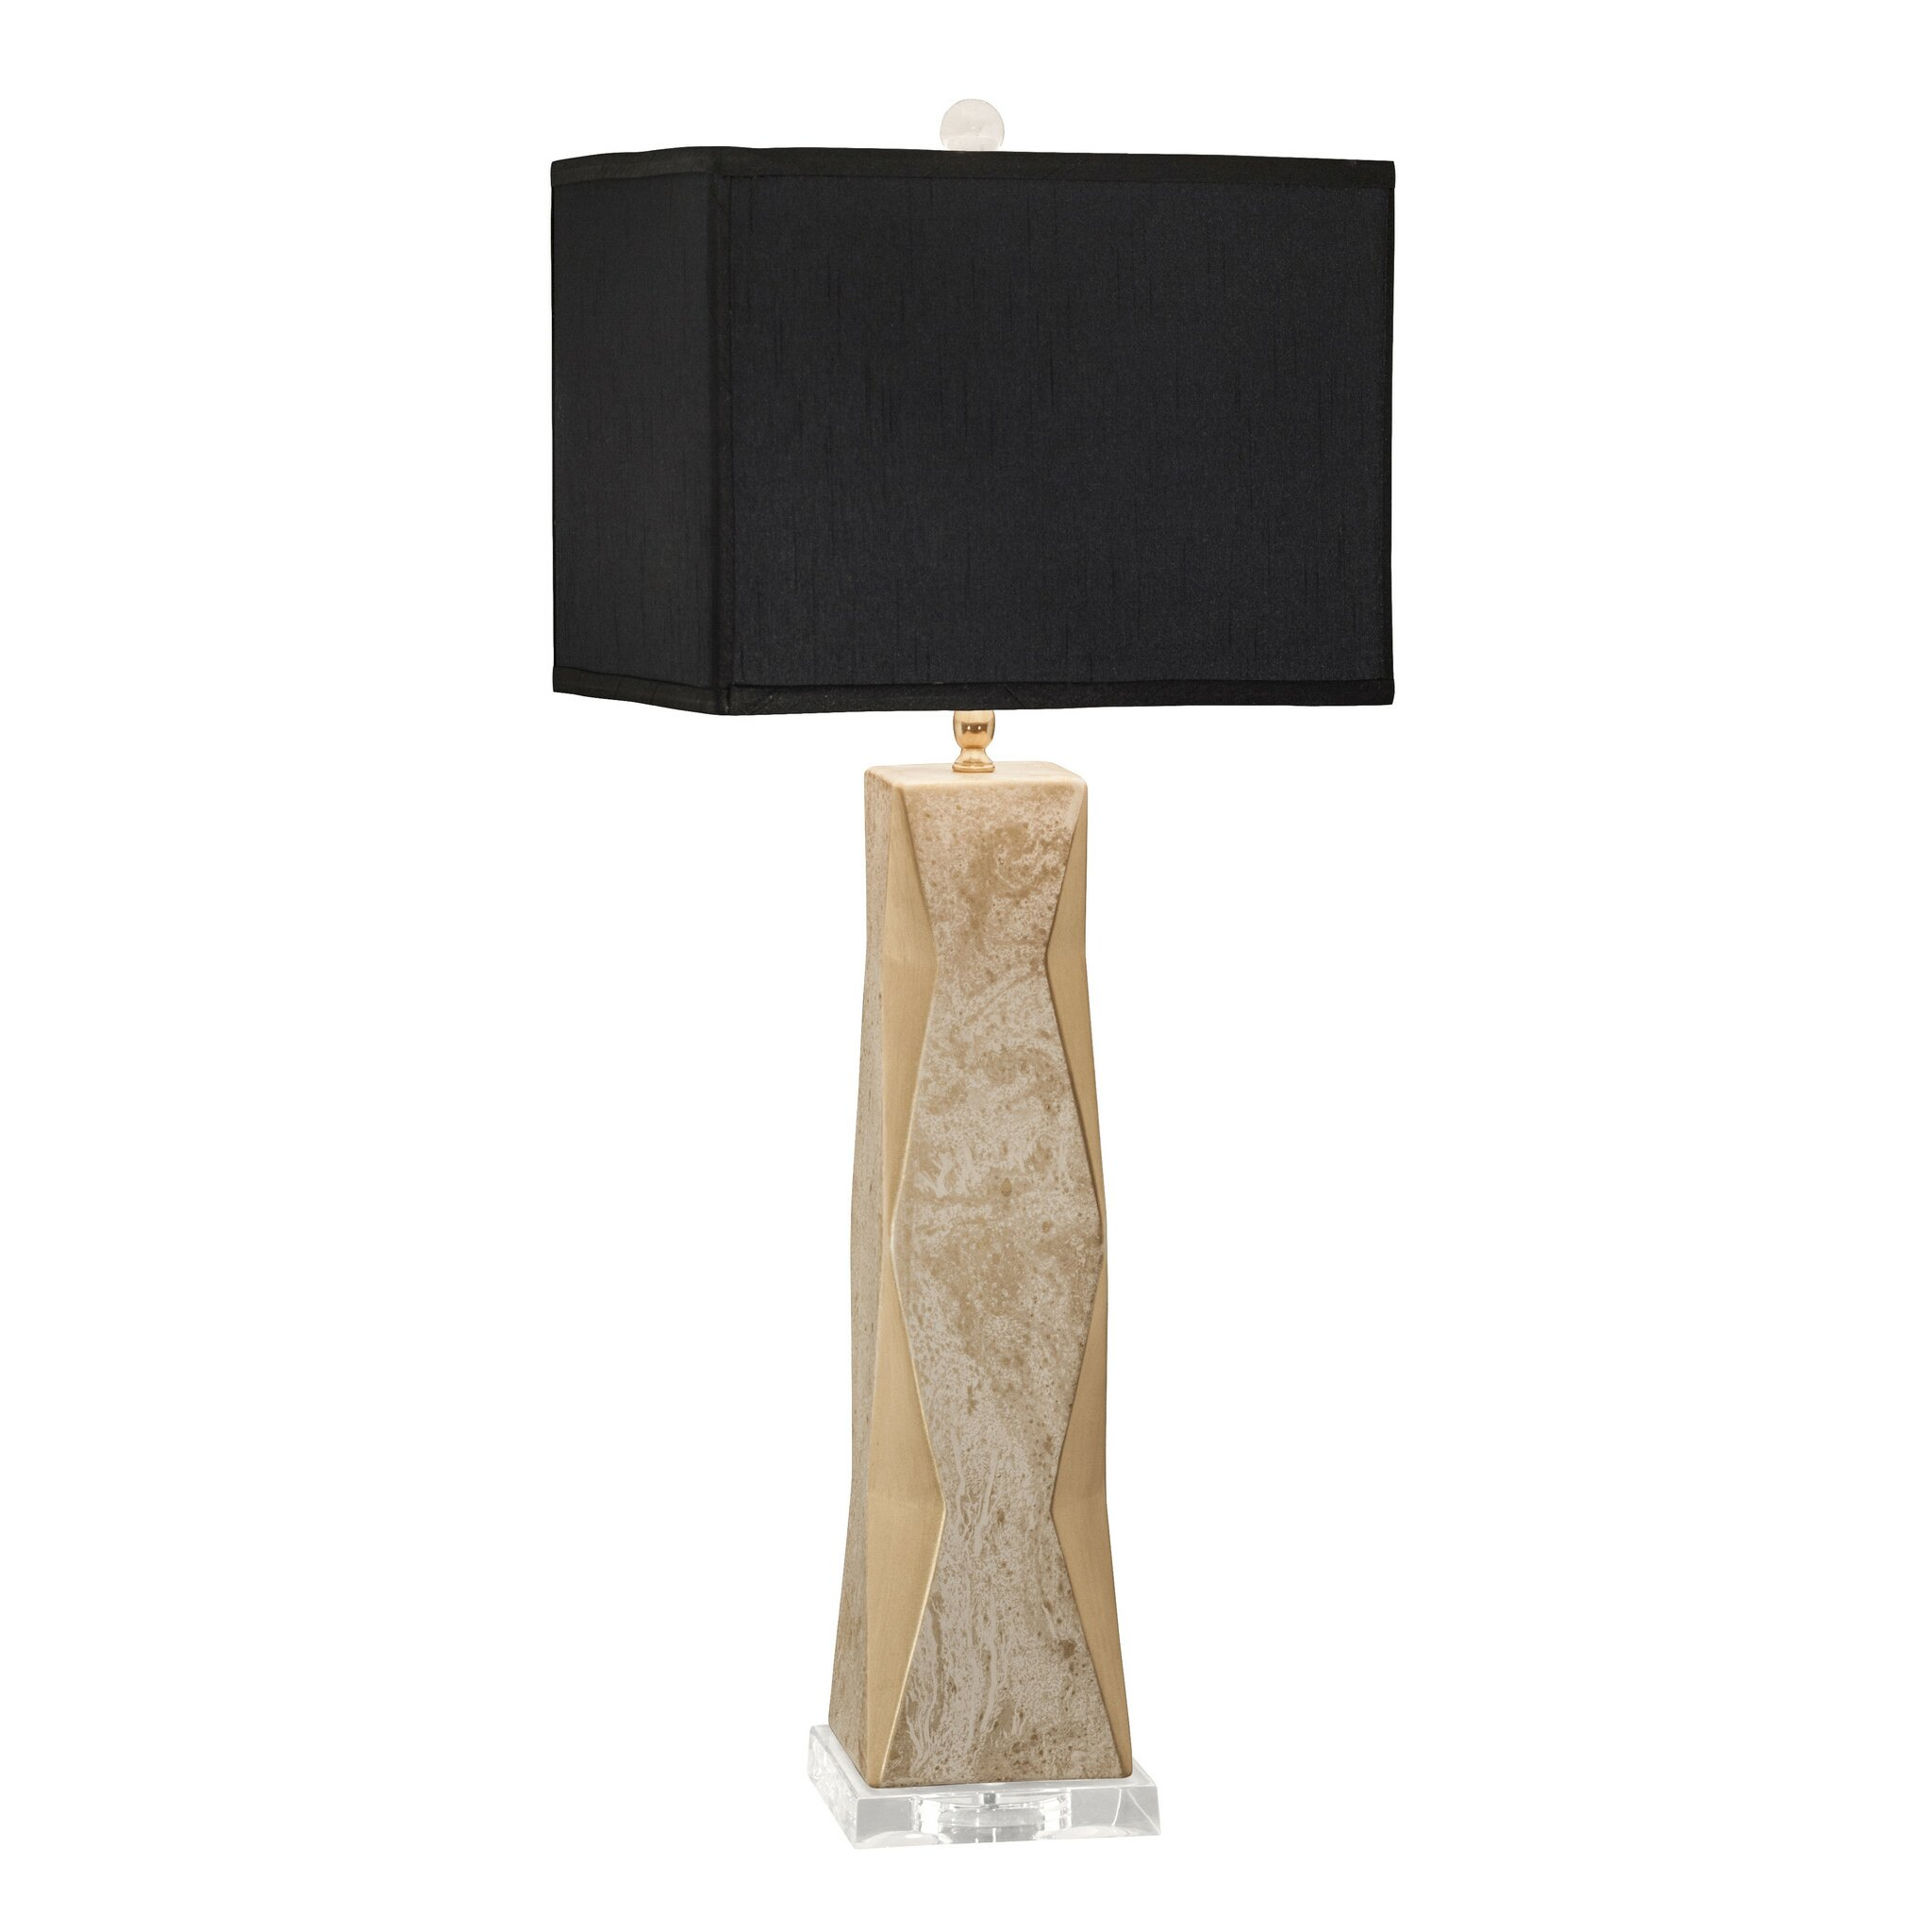 geo 33 table lamp with rectangular shade reviews. Black Bedroom Furniture Sets. Home Design Ideas